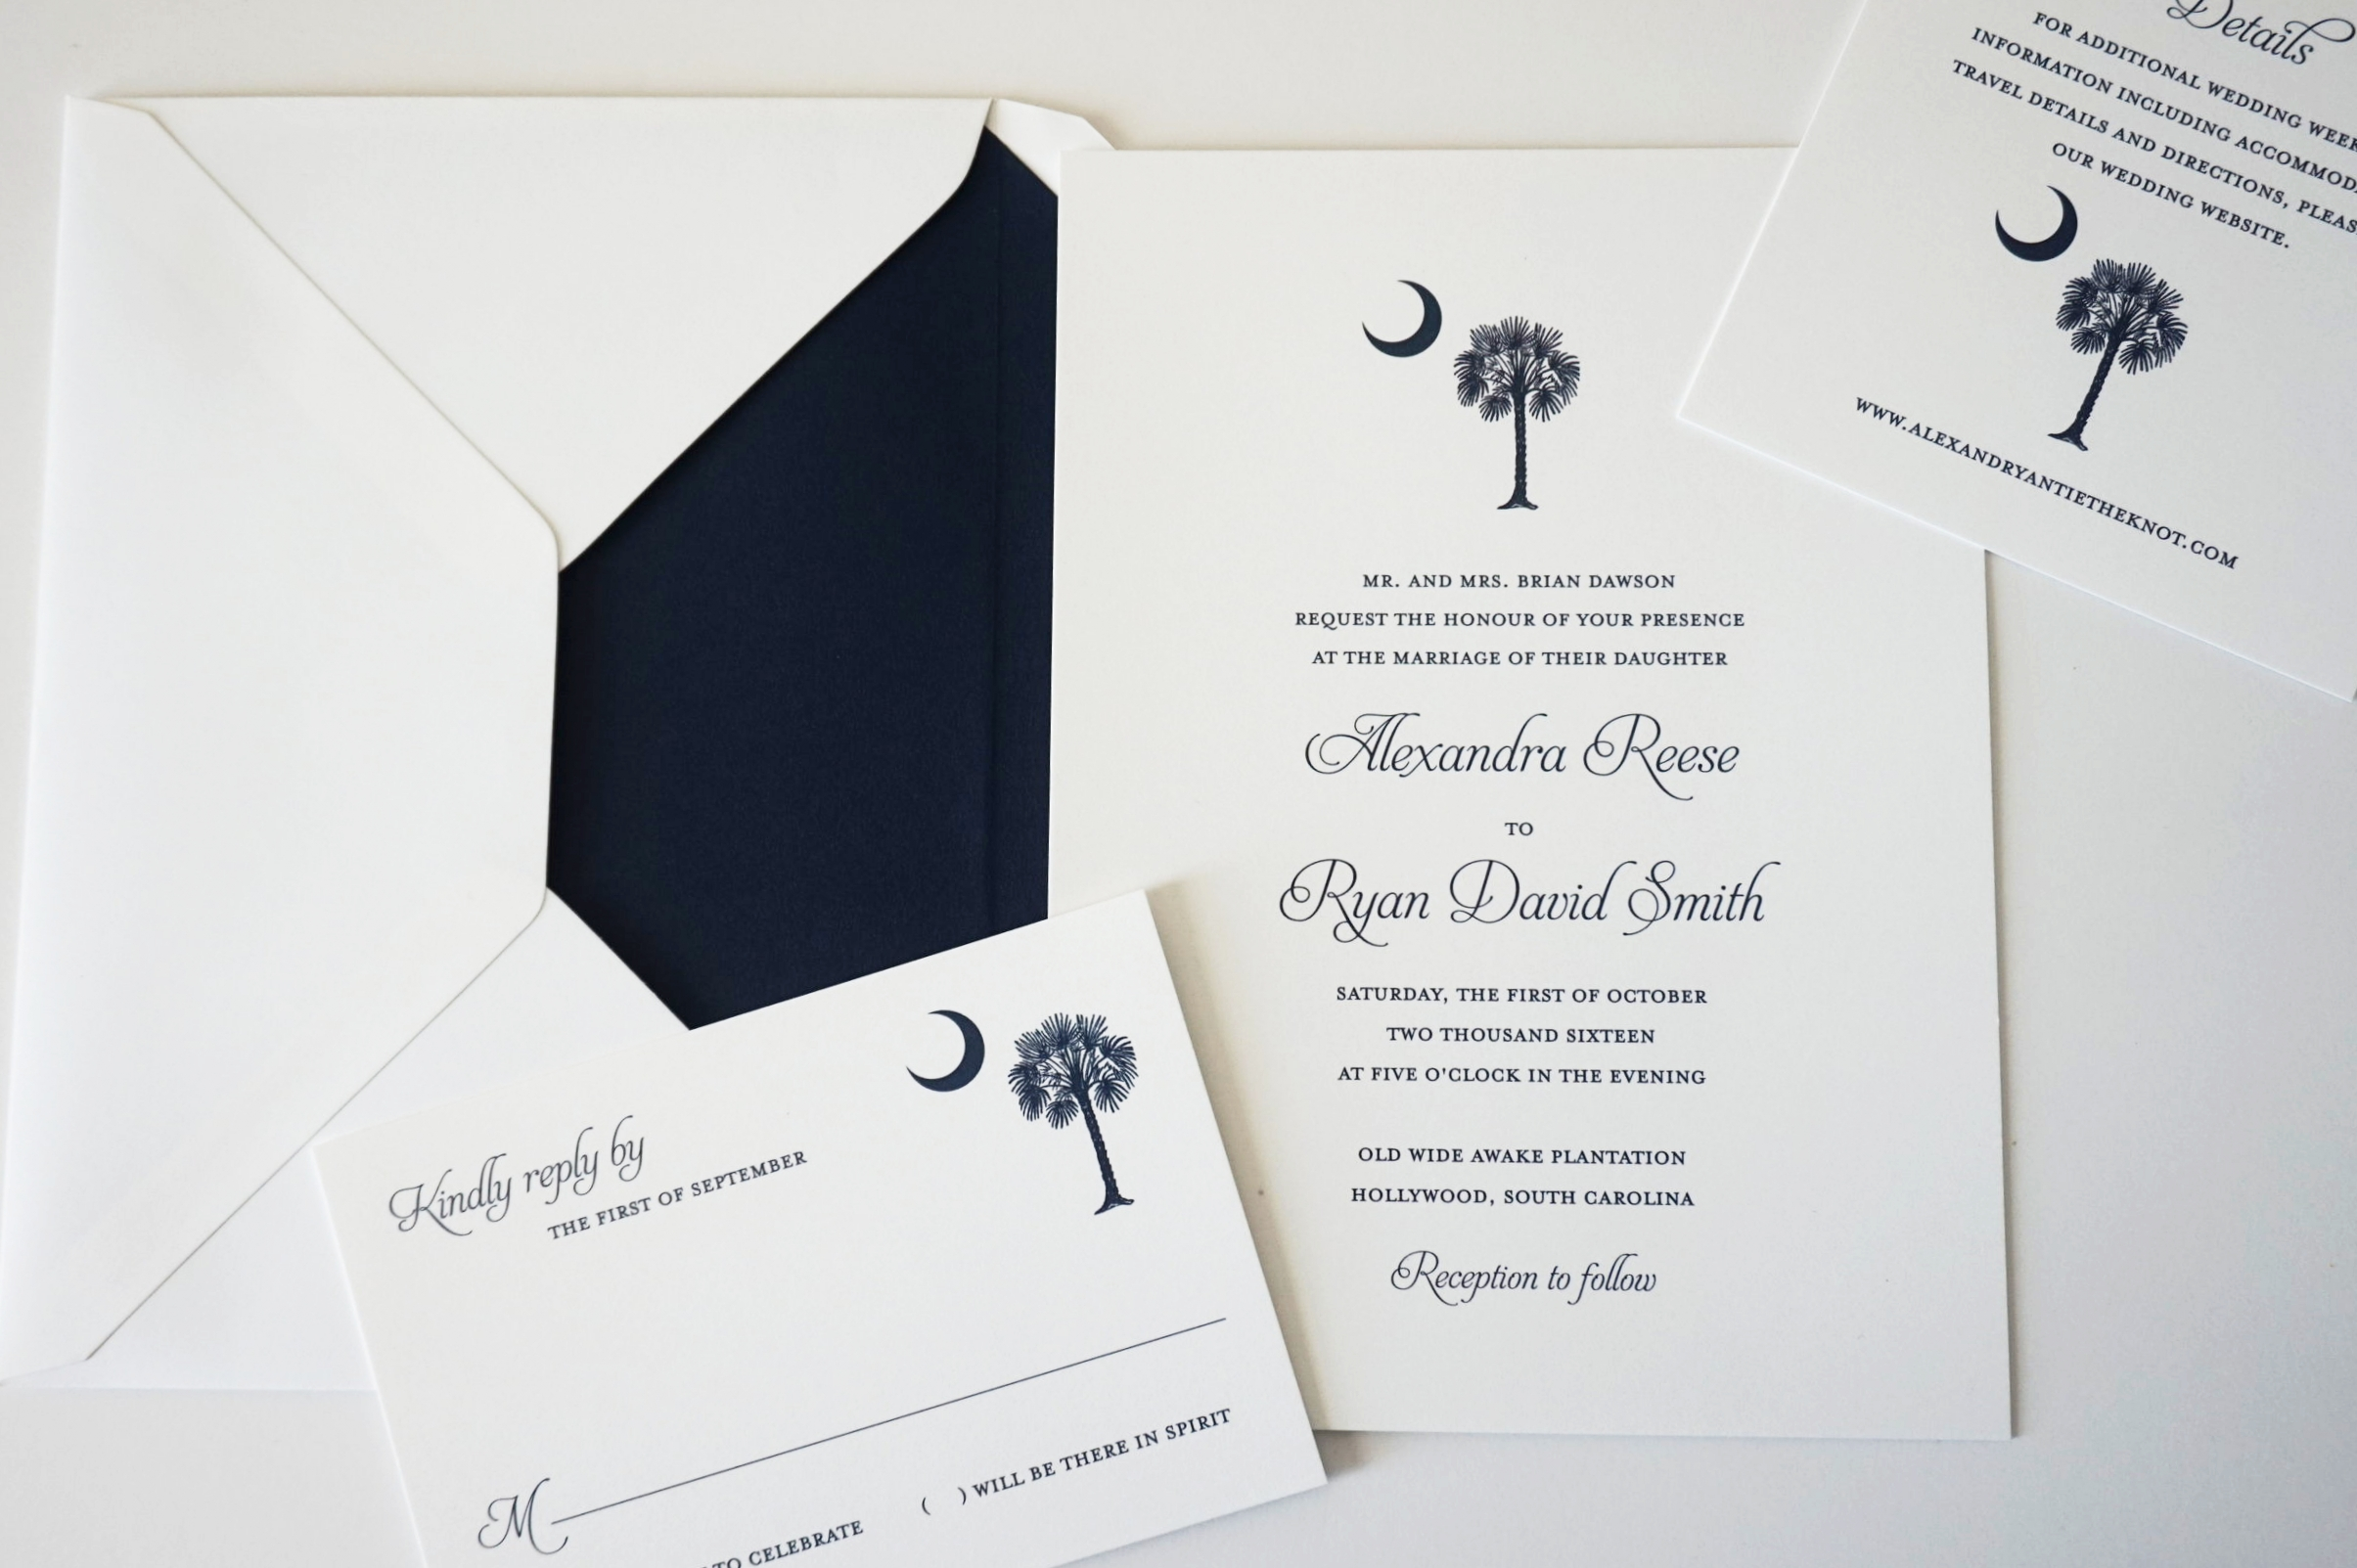 Alexa Palmetto Tree Invitation | South Carolina Wedding Invitations